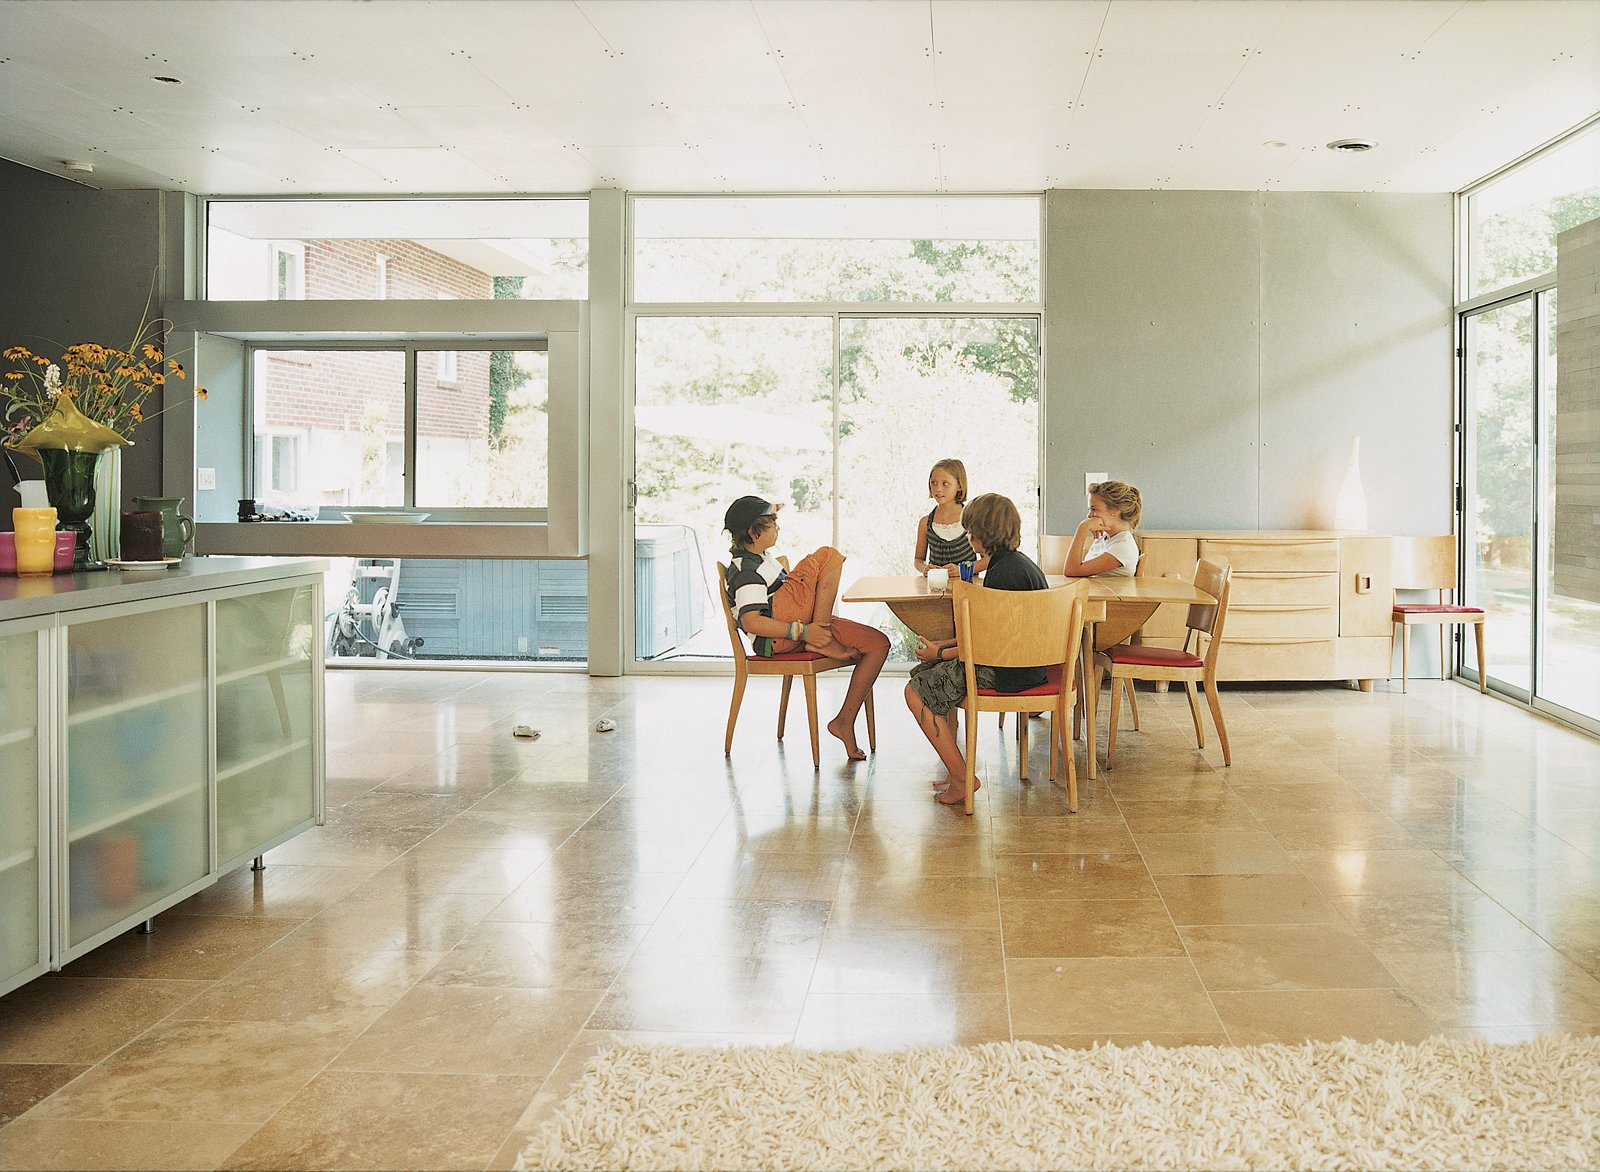 The kids gather around the Heywood-Wakefield dining set, which Terry purchased from Mainly Art in Cincinnati. The flooring in the kitchen and living area is honed travertine from The Great Indoors.  Photo 2 of 6 in Modern Across America: Cincinnati, Ohio from Home Schooled